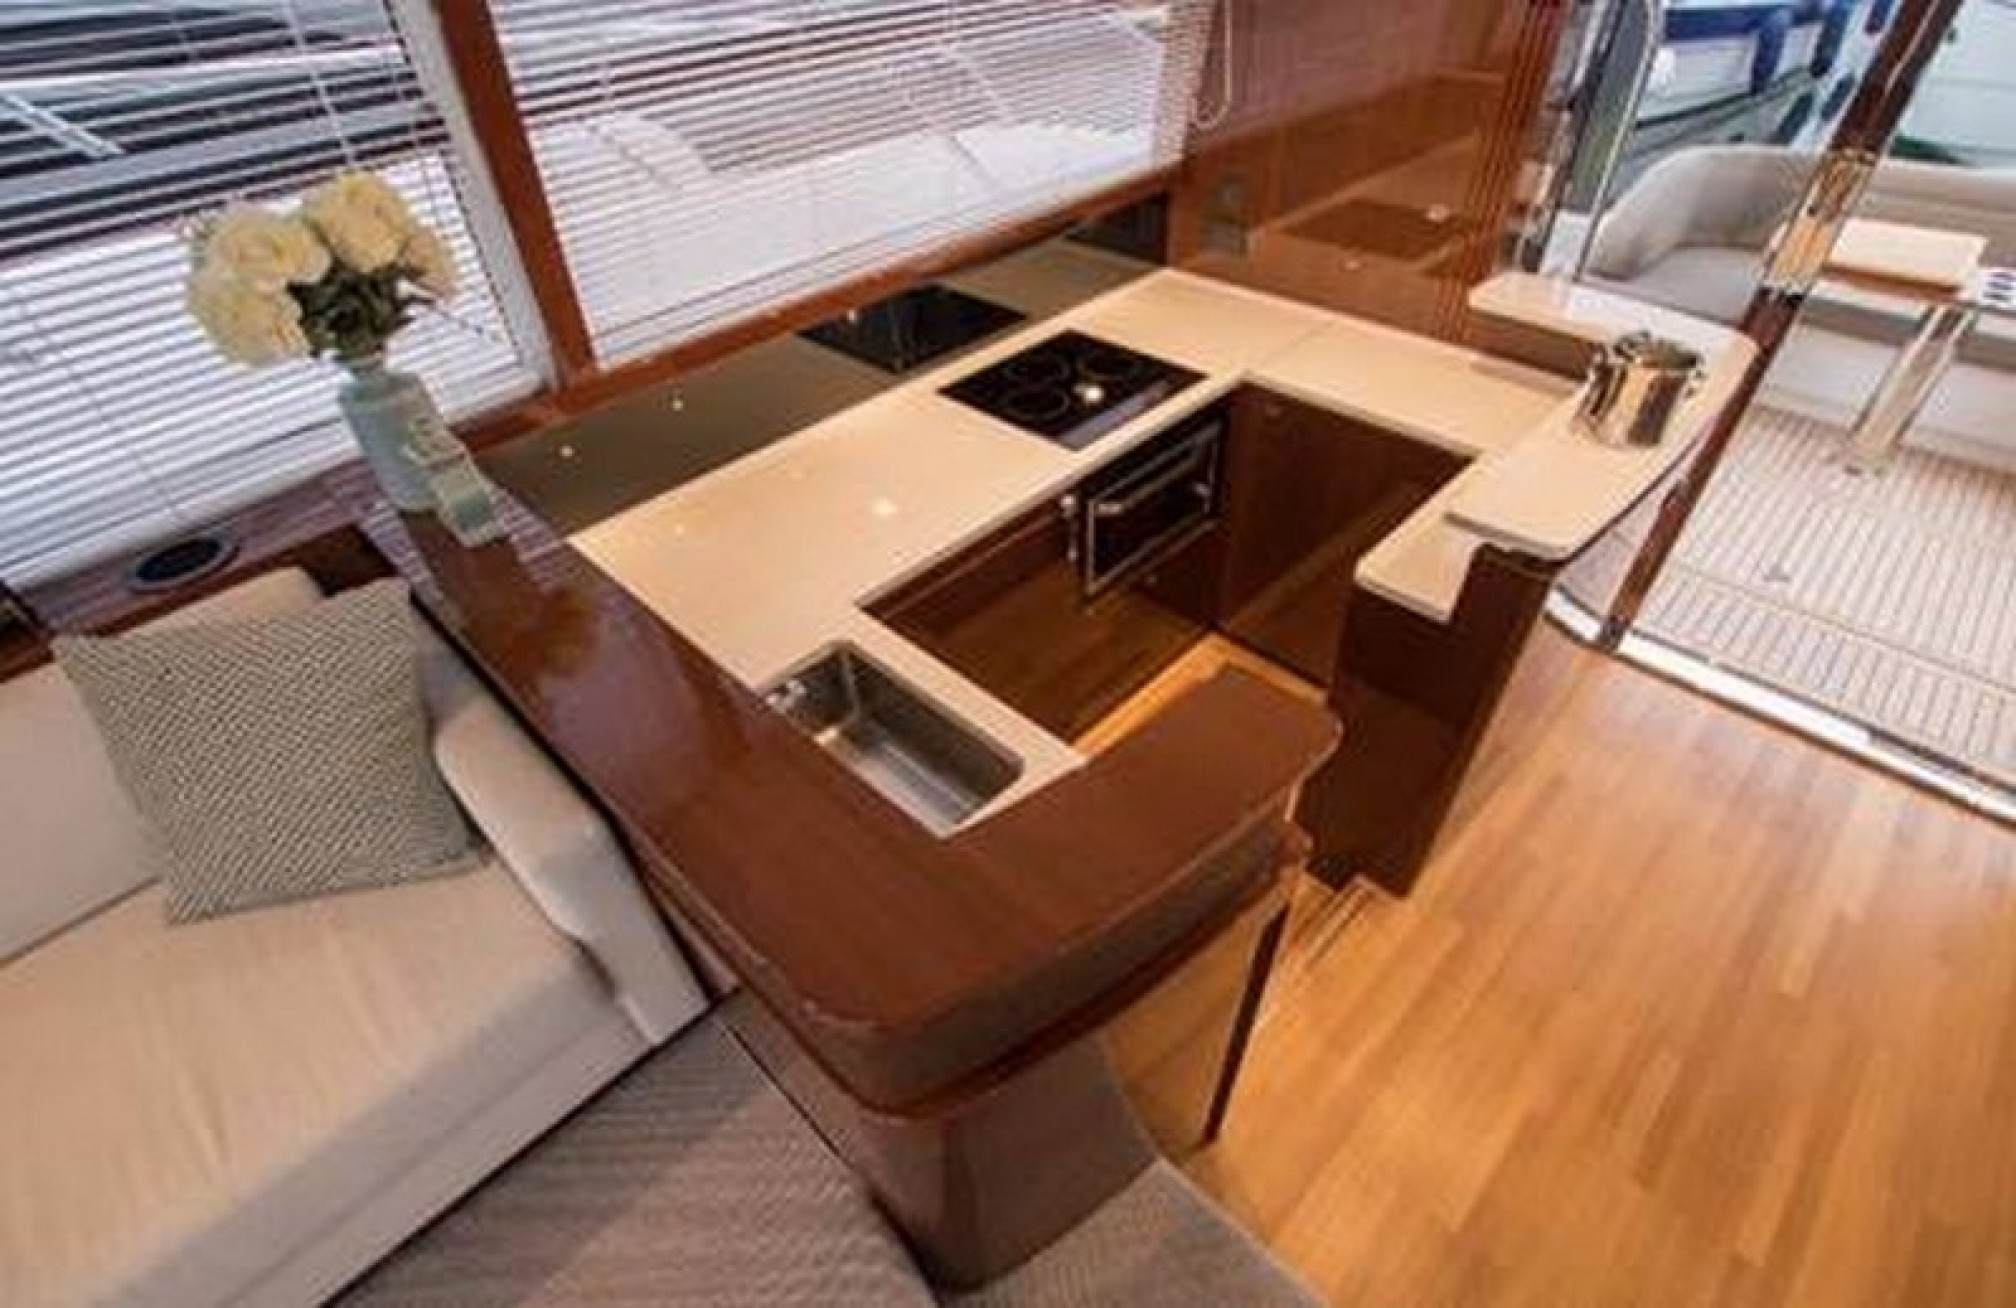 Princess 52 charter yacht kitchen